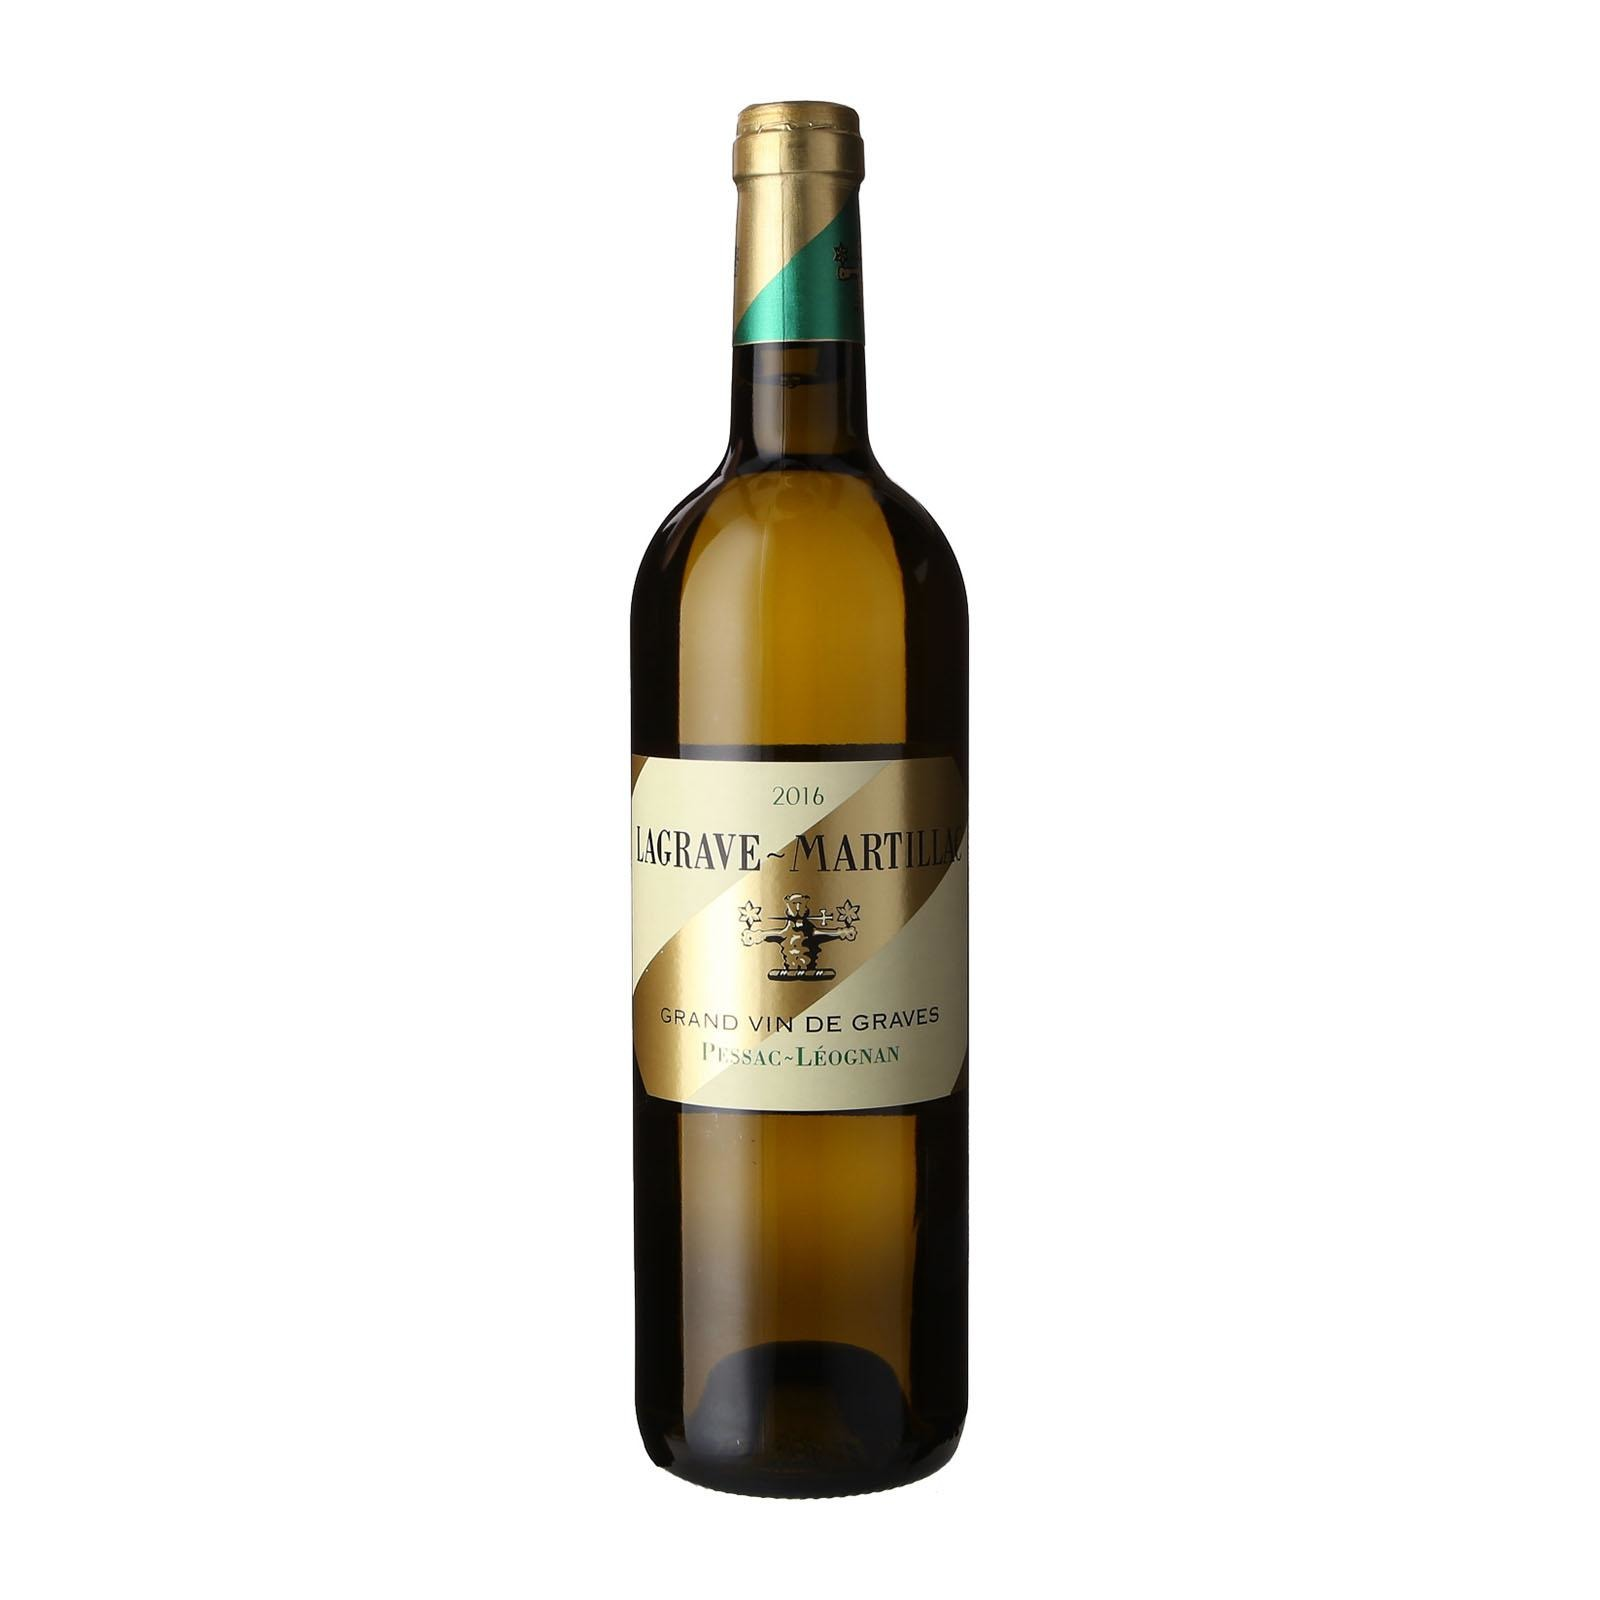 Chateau Lagrave Martillac Blanc Grand Vin de Graves